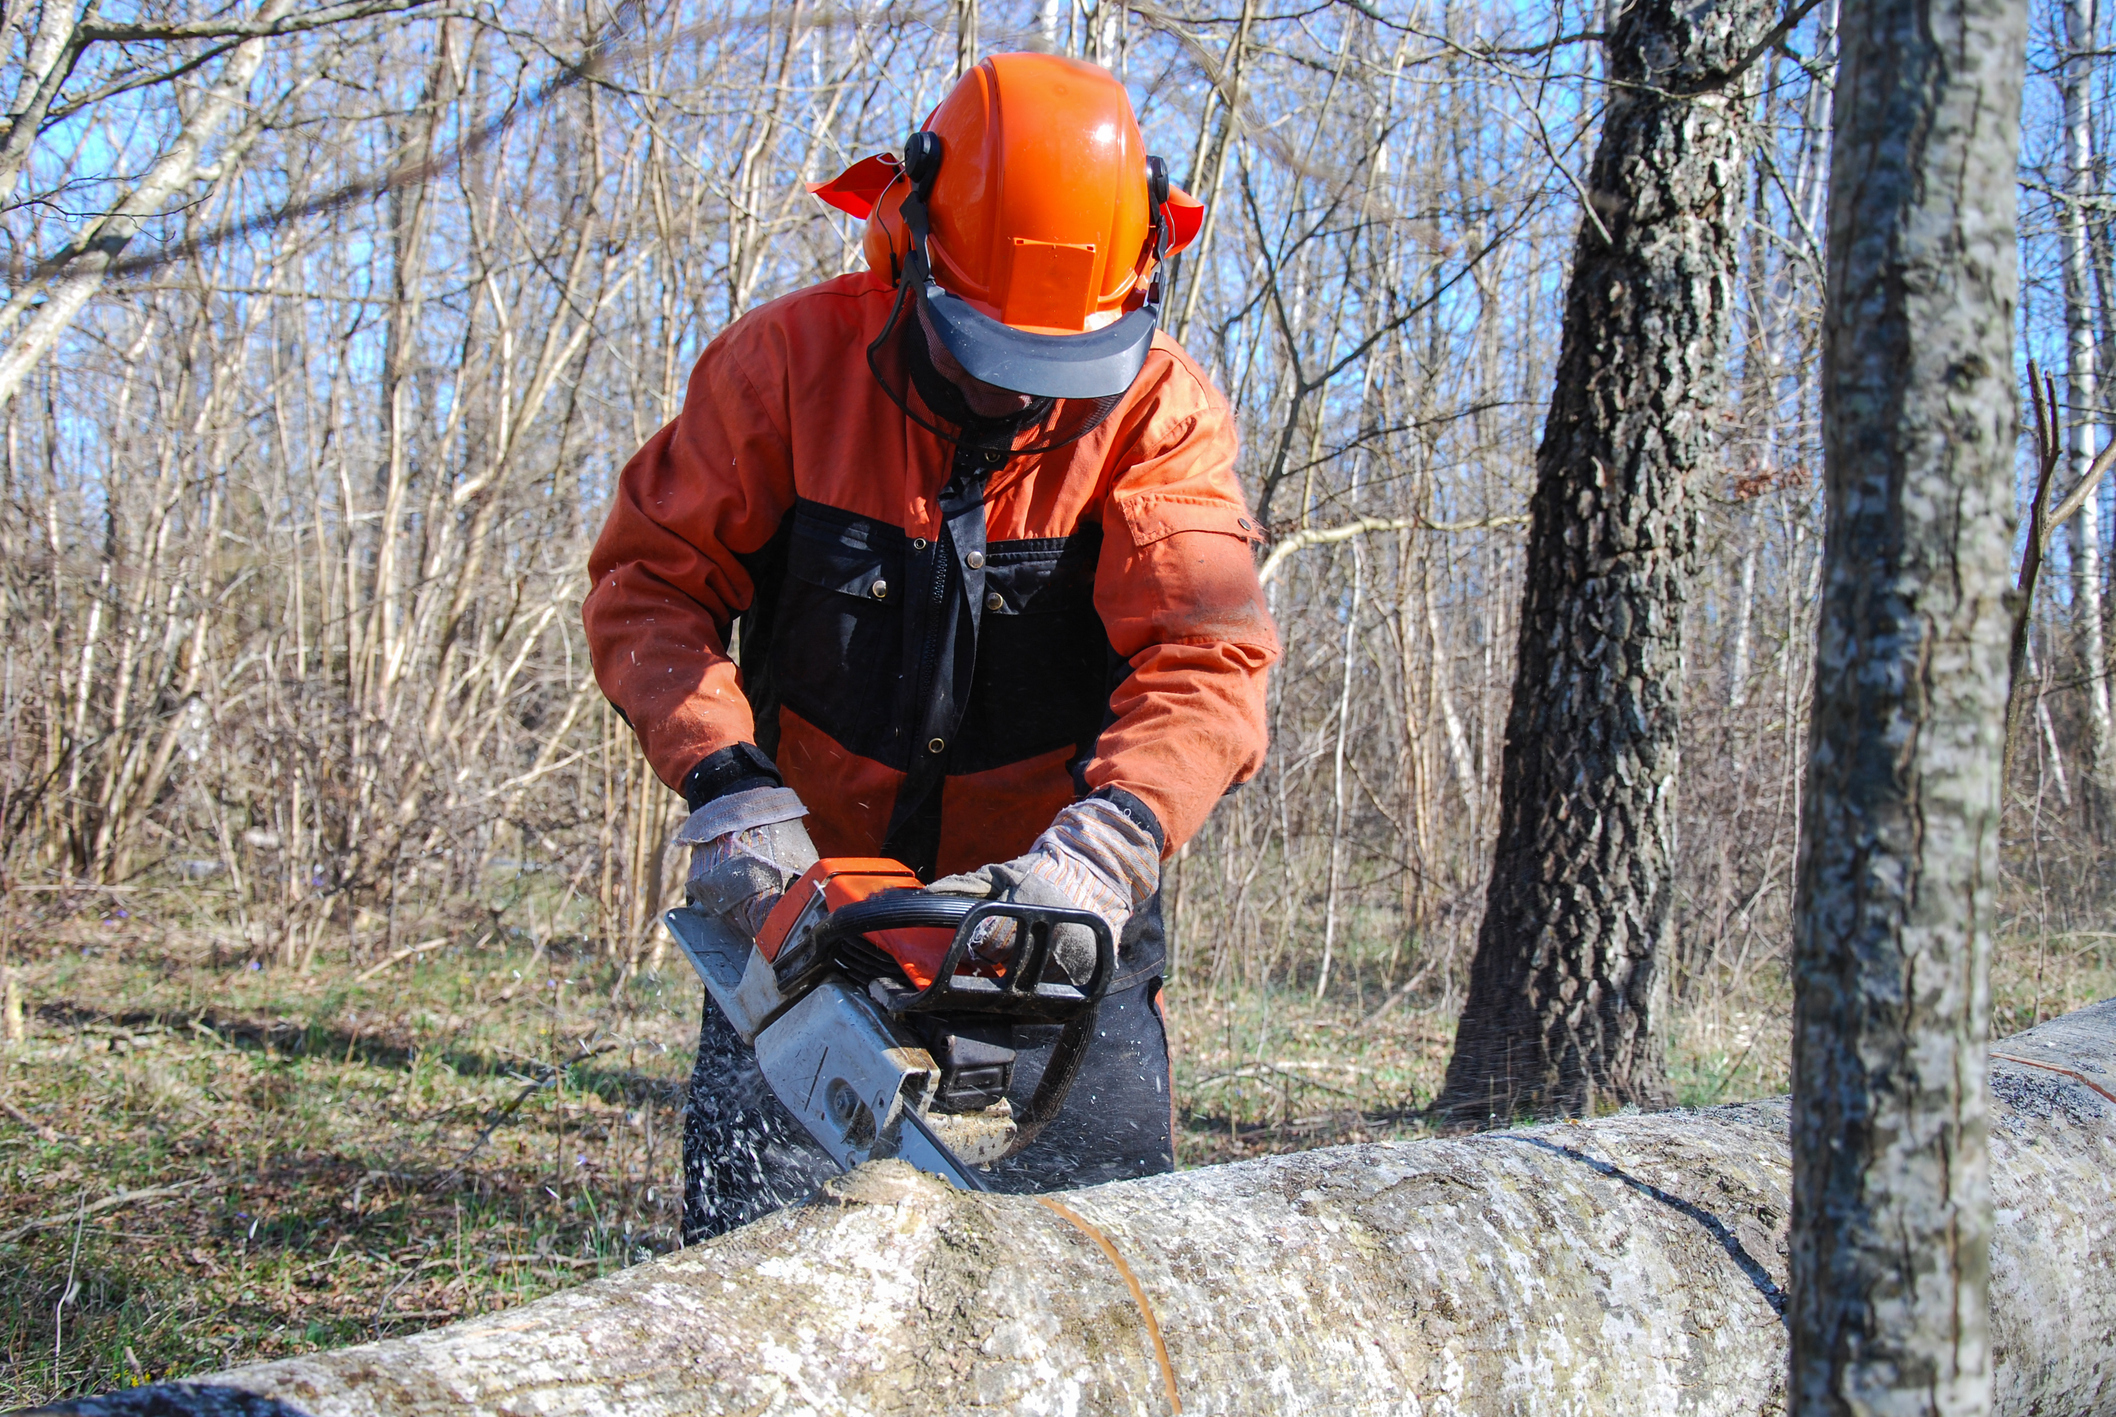 Wear the right safety kit when using a chainsaw